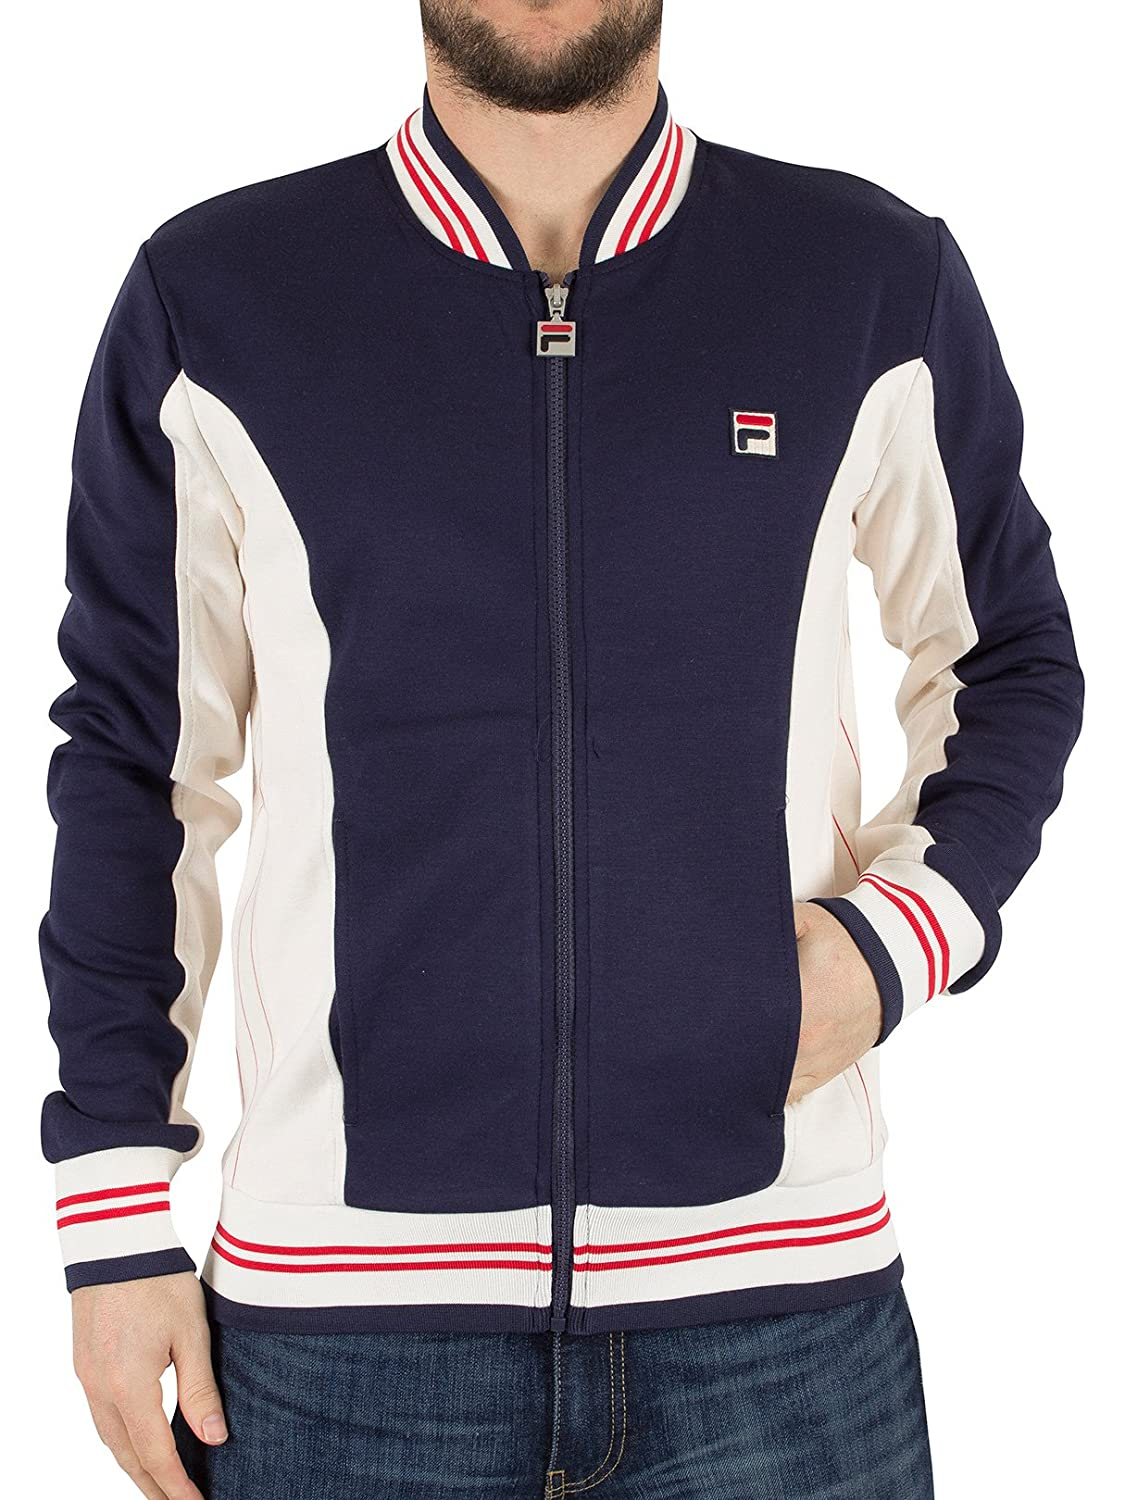 Fila Vintage Settanta Baseball Jacket | Peacoat (Medium)